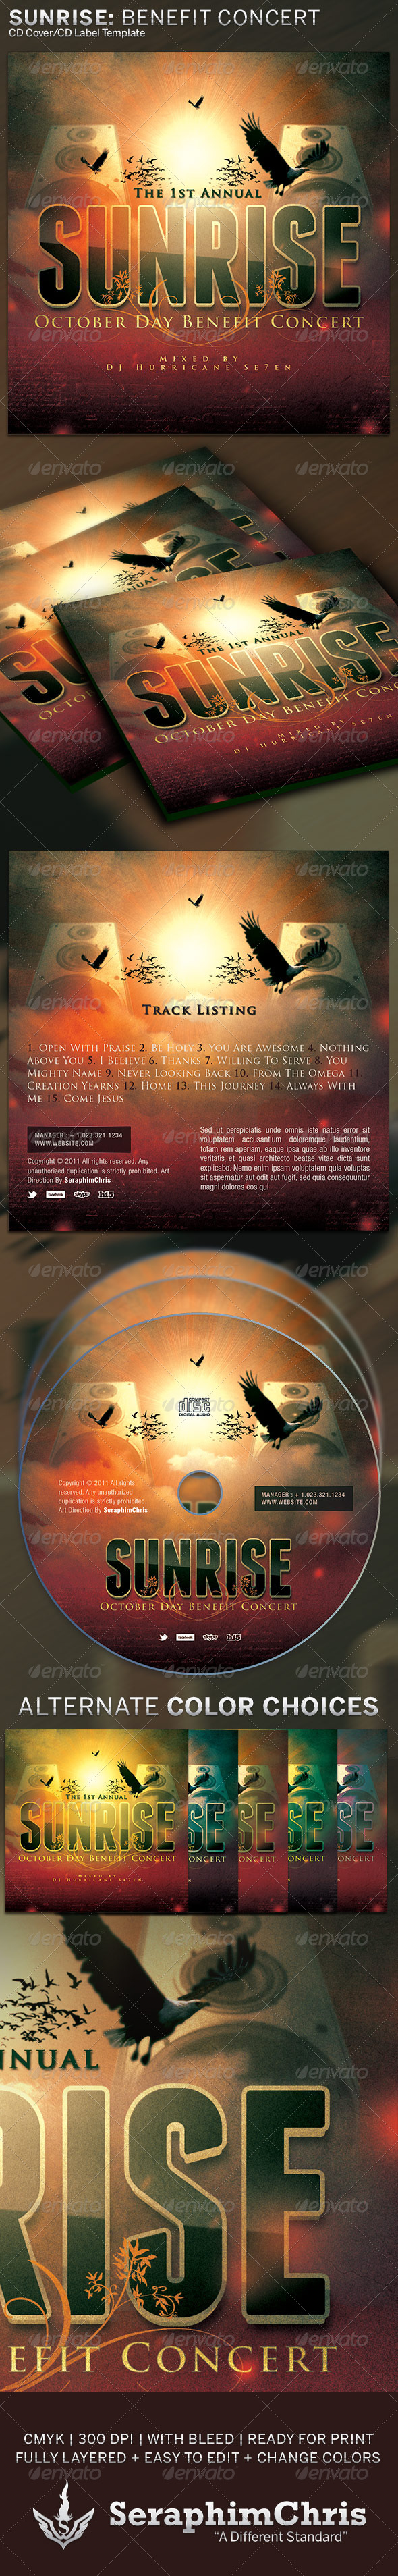 Sunrise Benefit Concert: CD Cover Artwork Template - CD & DVD Artwork Print Templates